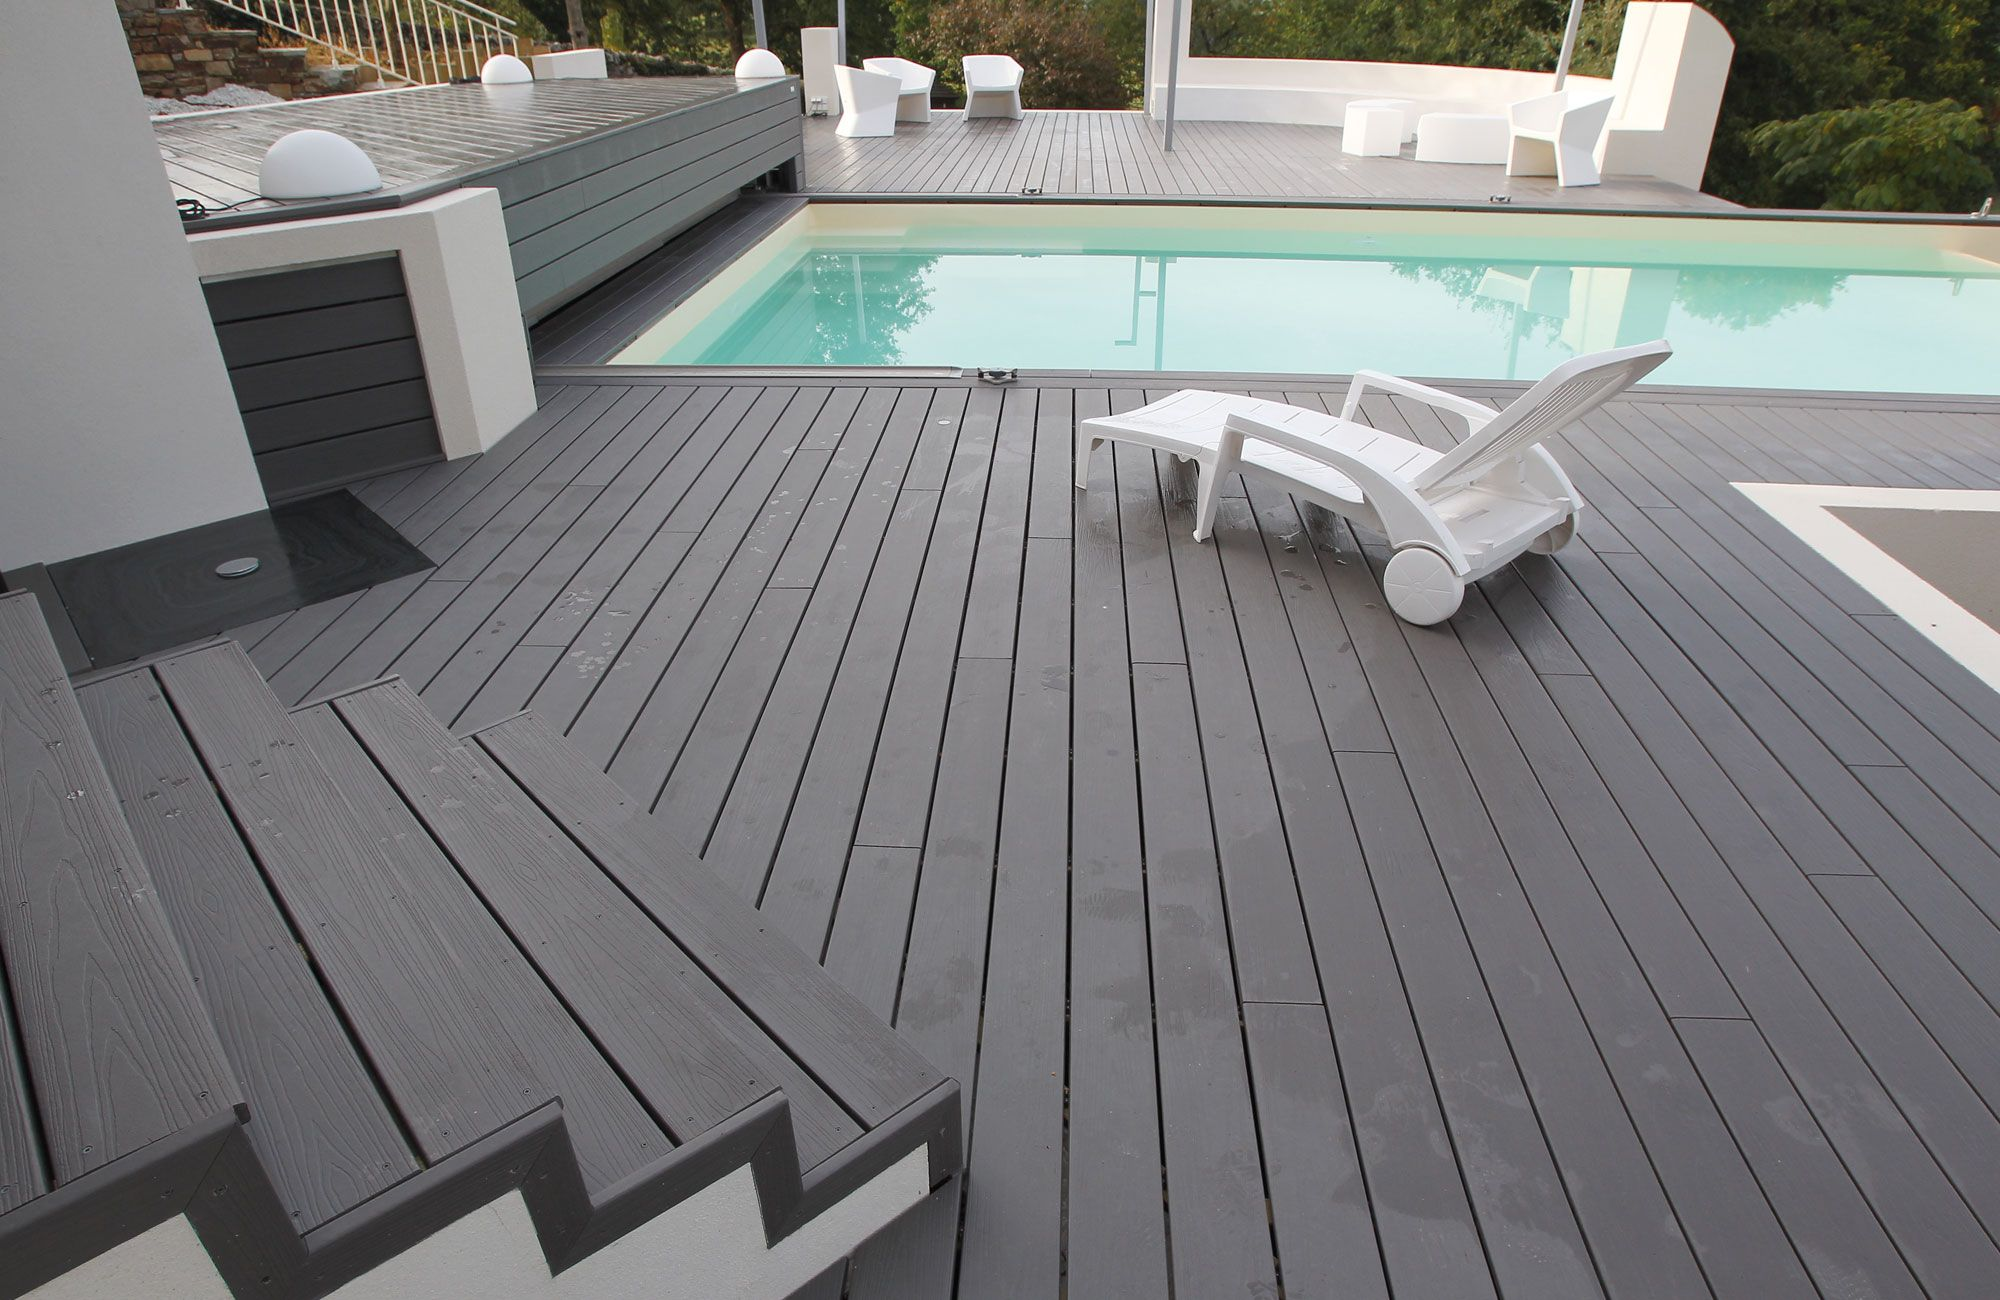 Lame Terrasse Composite Promo Lame Composite Decking #composite #material #decking